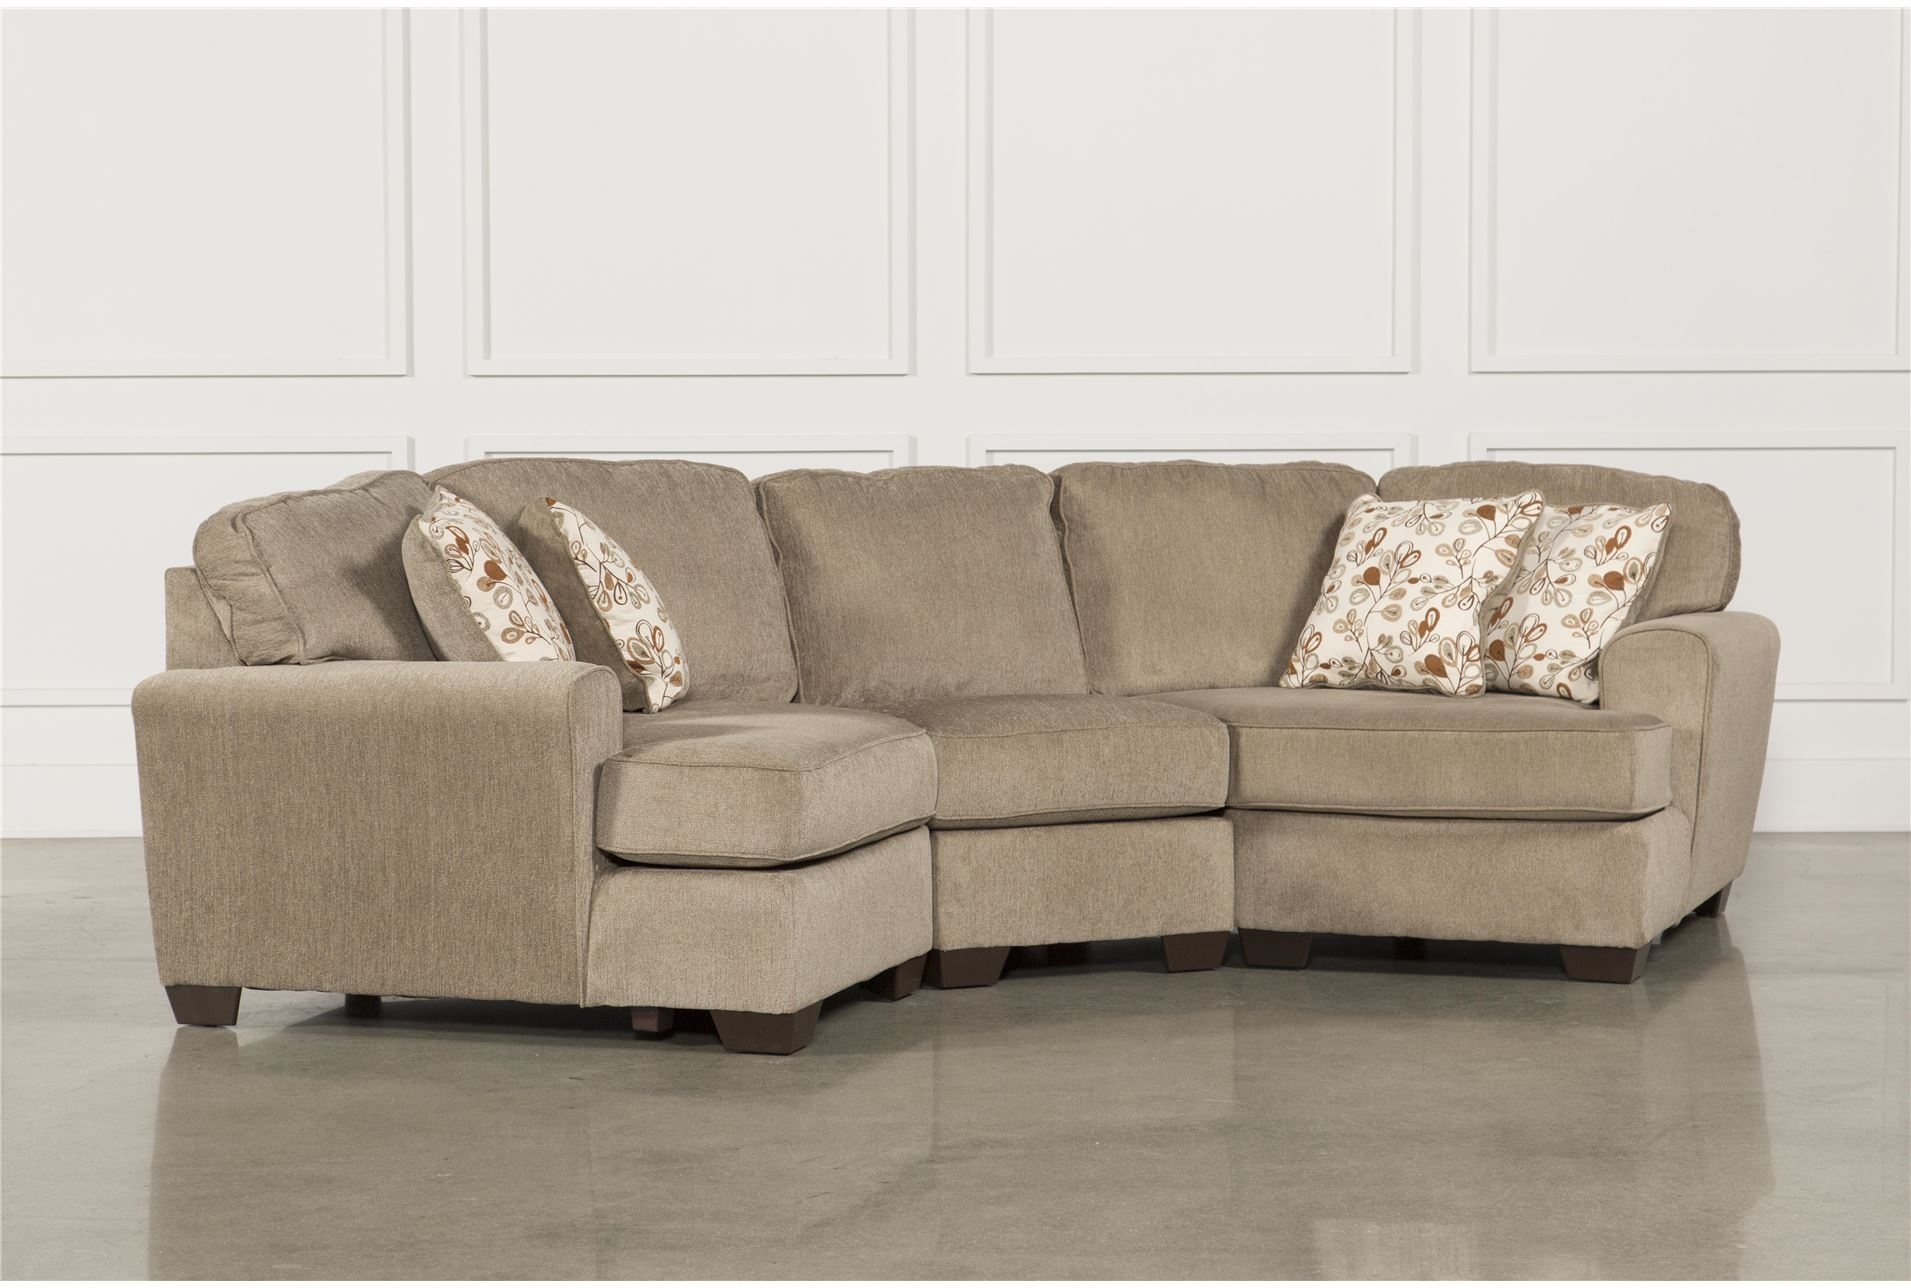 New Cuddler Sectional Sofa 20 For Your Contemporary Sofa Inspiration In Sectional Sofas With Cuddler (View 9 of 10)